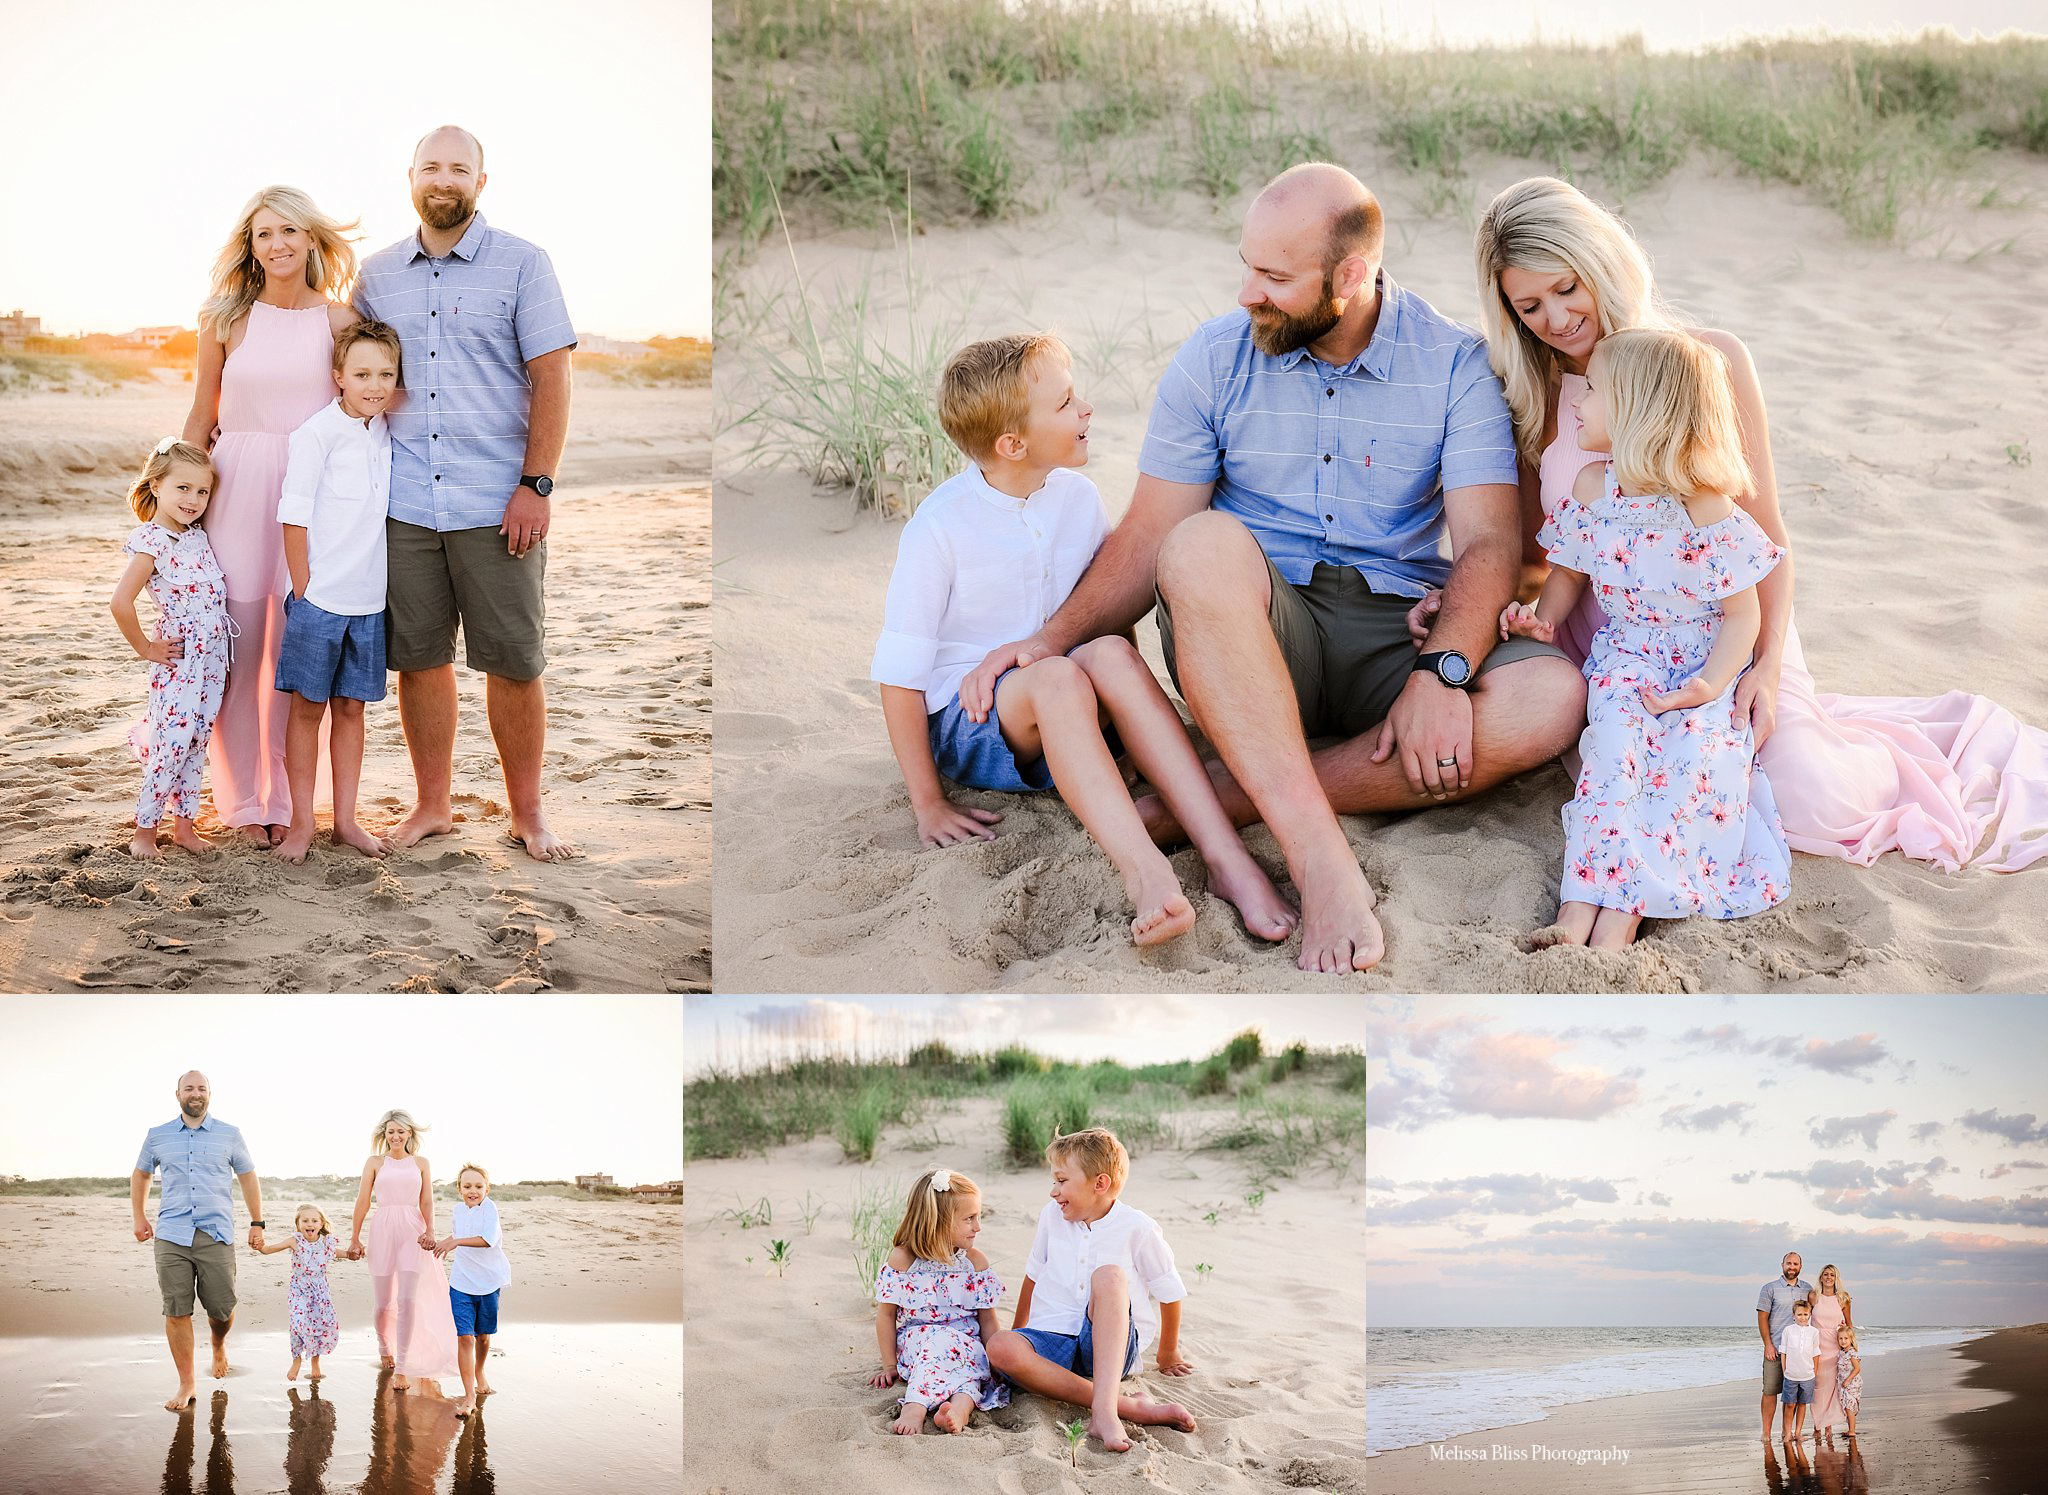 virginia-beach-family-photographer-melissa-bliss-photography-captures-award-winning-family-beach-photos.jpg